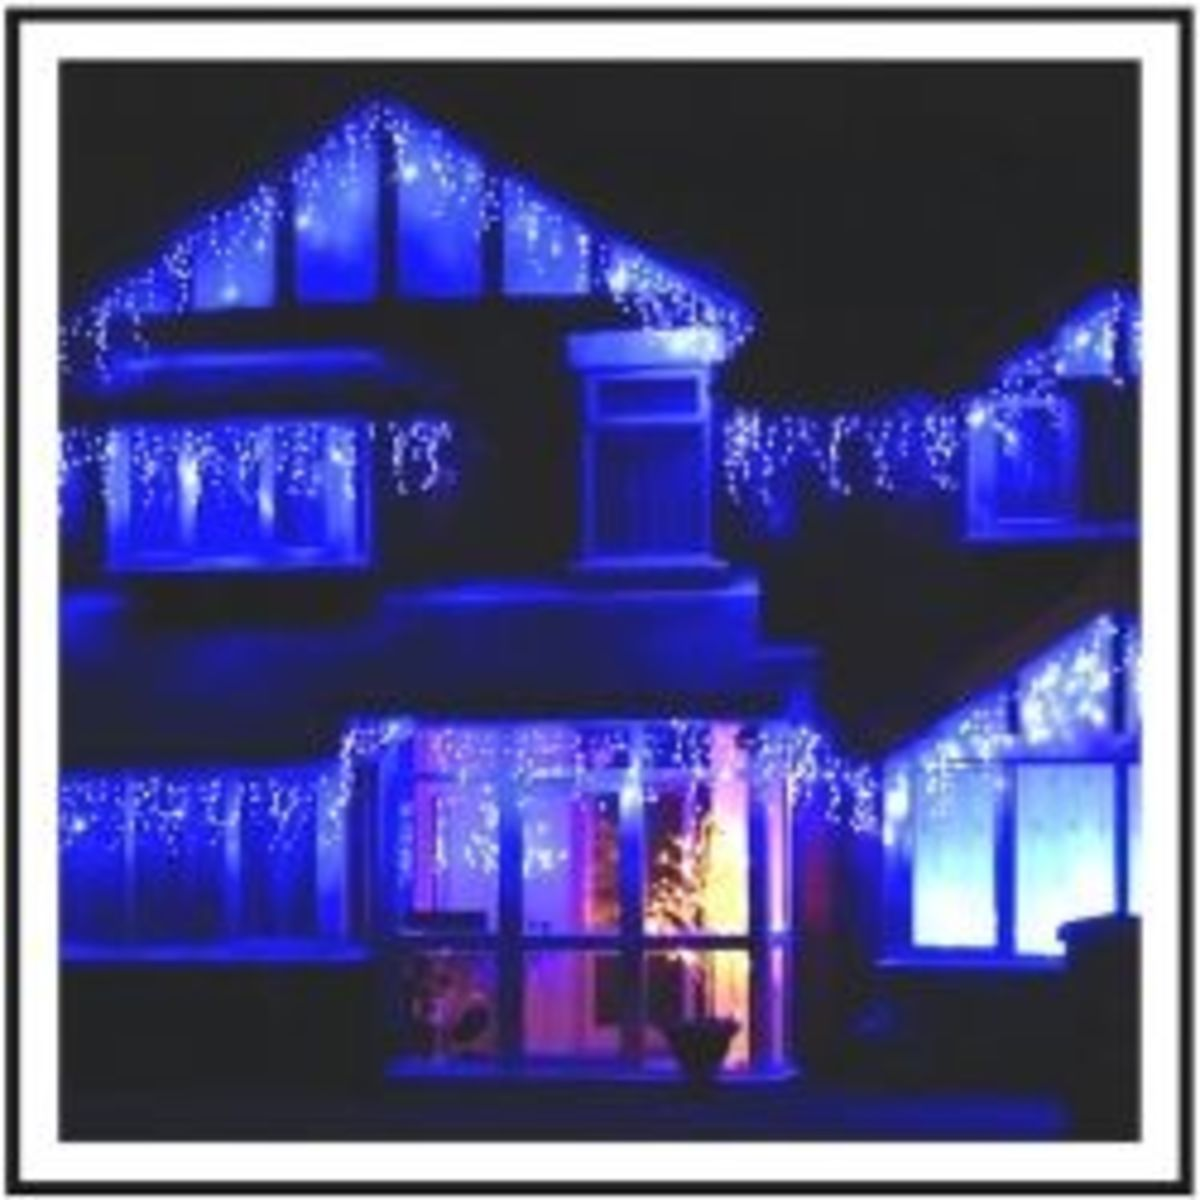 Blue Icicle Christmas Holiday LED Lights Trim This House on the Water. Available below.